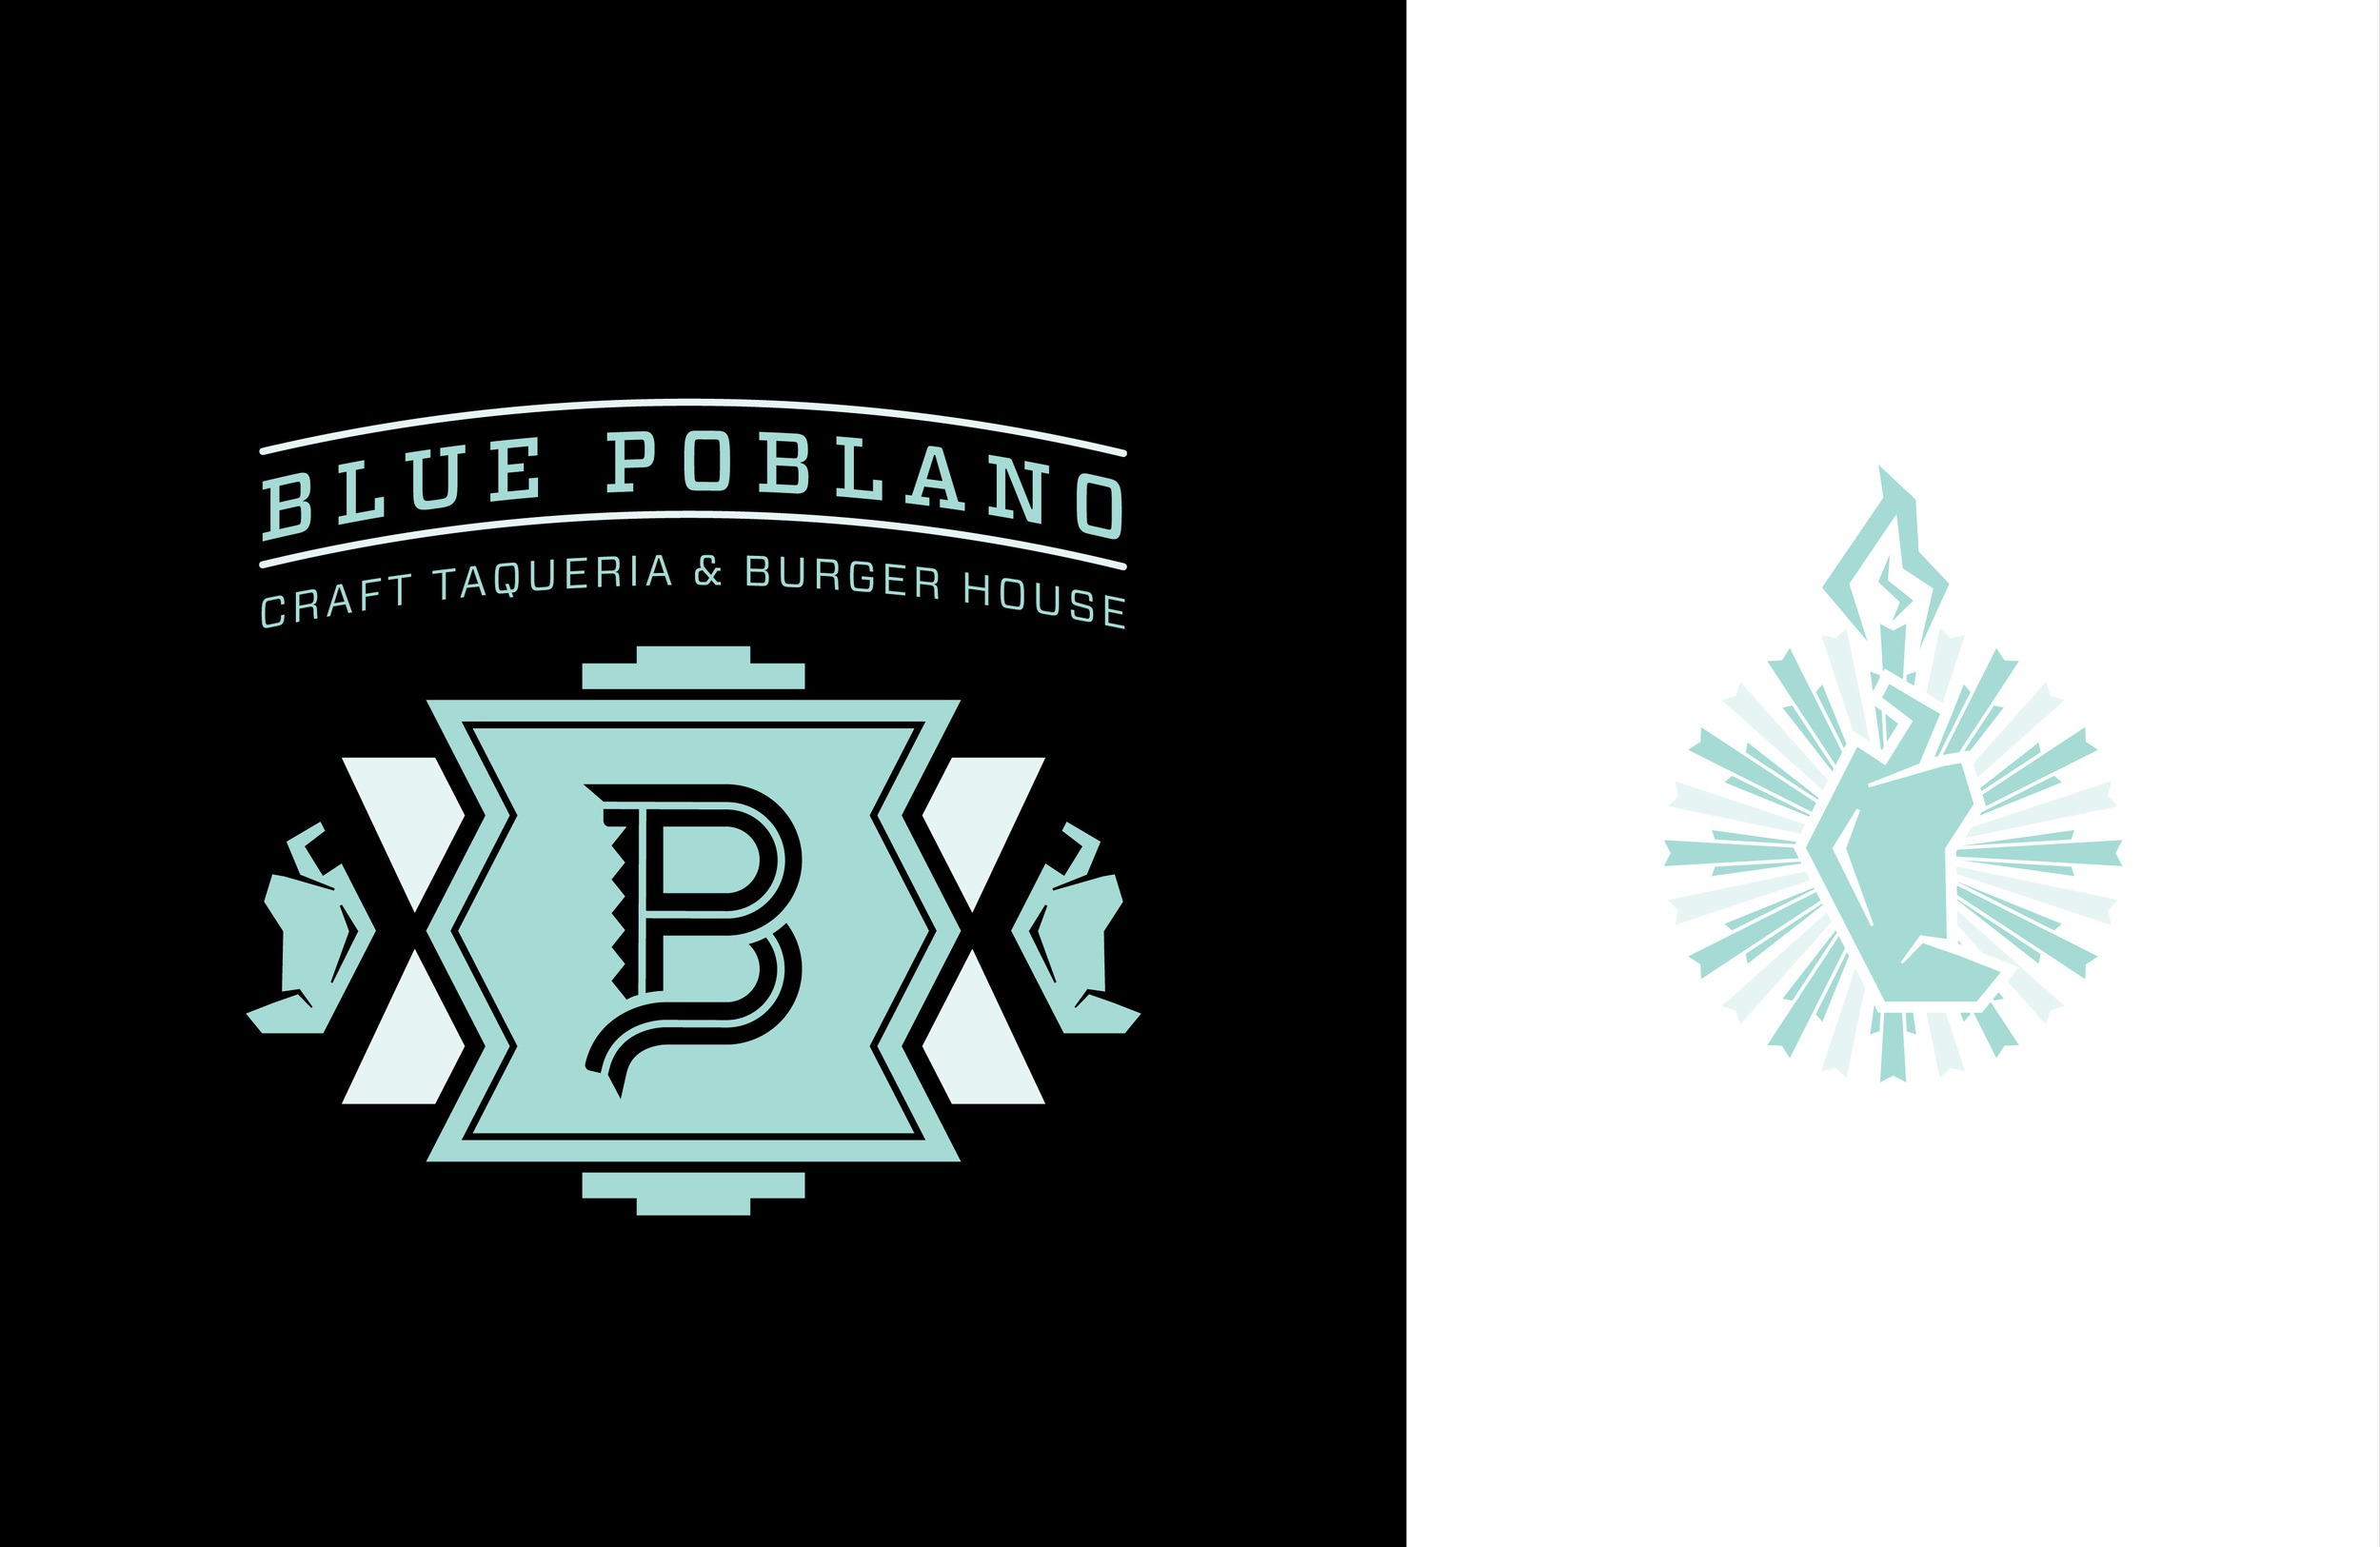 BLUE POBLANO LOGO: Two Color version of the Blue Poblano lock up.